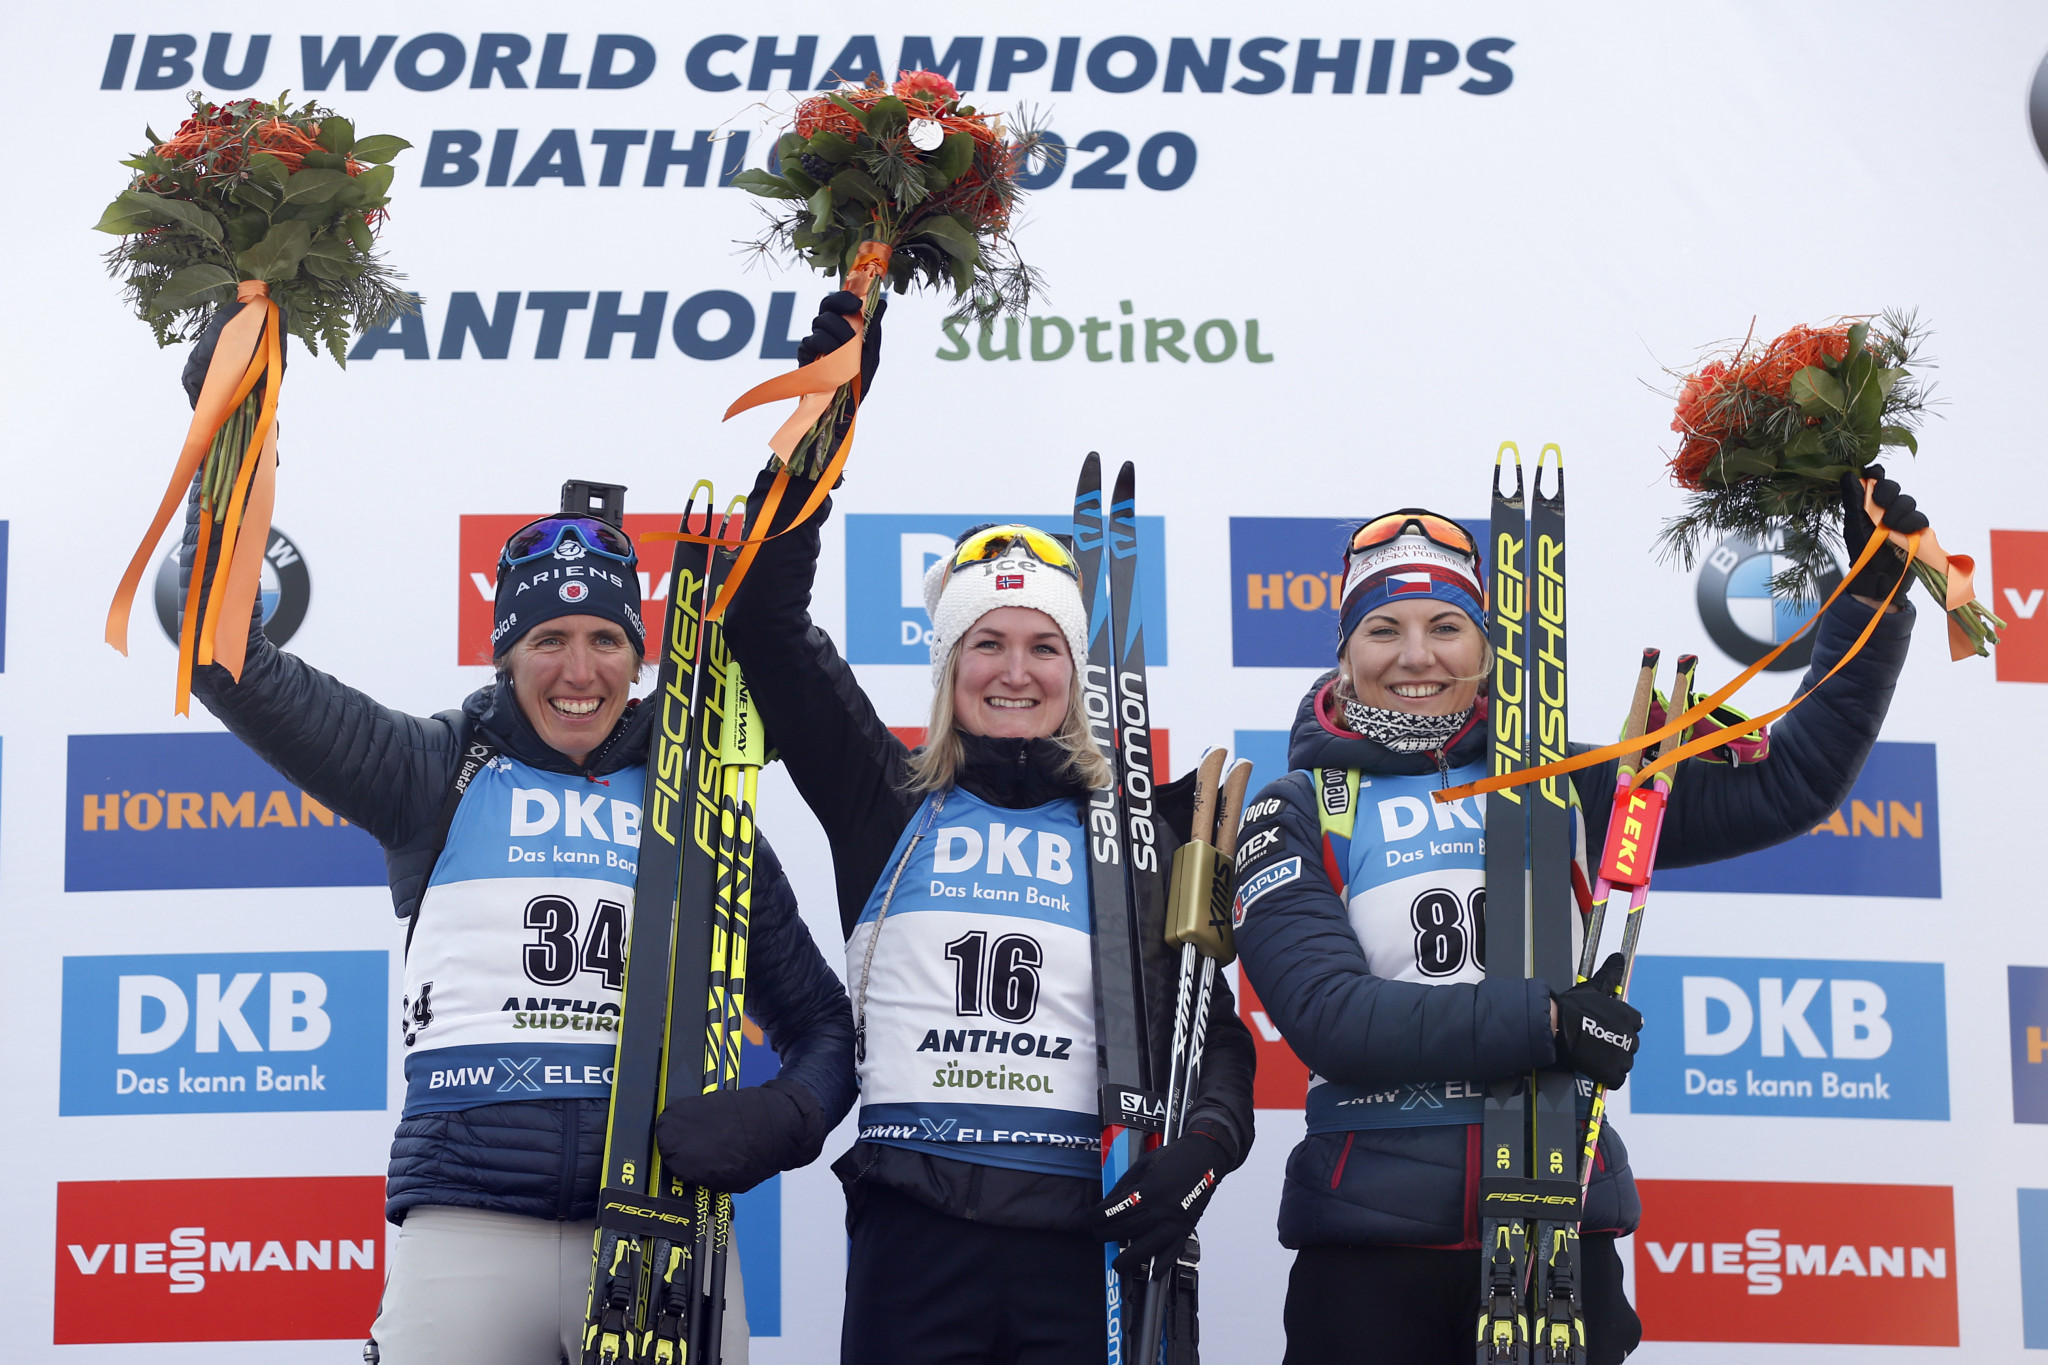 Marte Olsbu Røiseland of Norway triumphed in the women's sprint in Antholz-Anterselva ©Getty Images